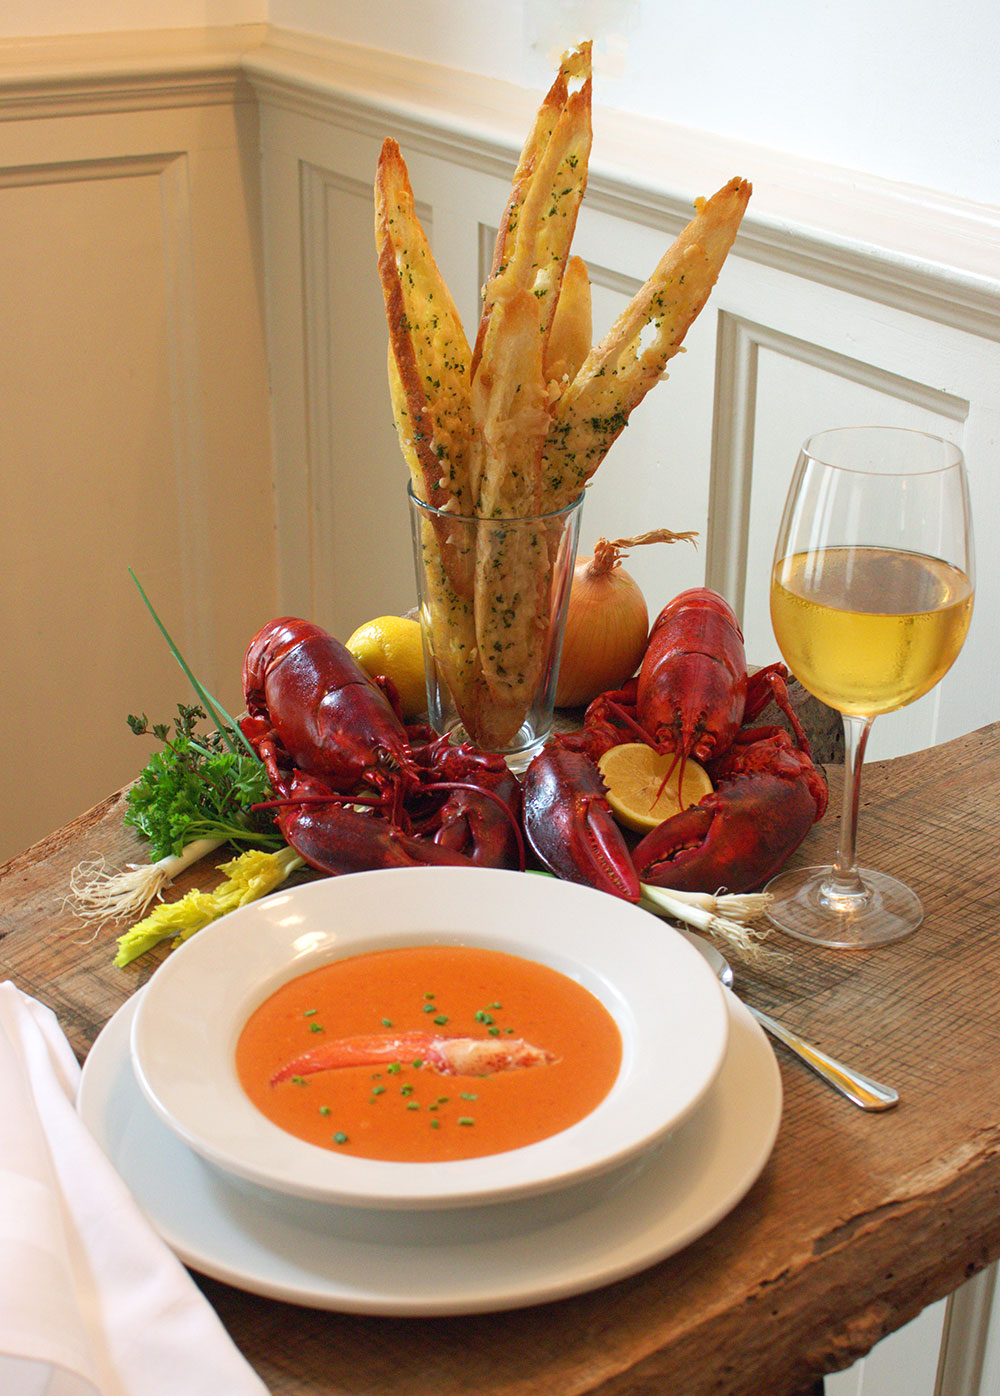 lobster bisque in white bowl set on wooden table with glass of white wine bread in glass and lobsters